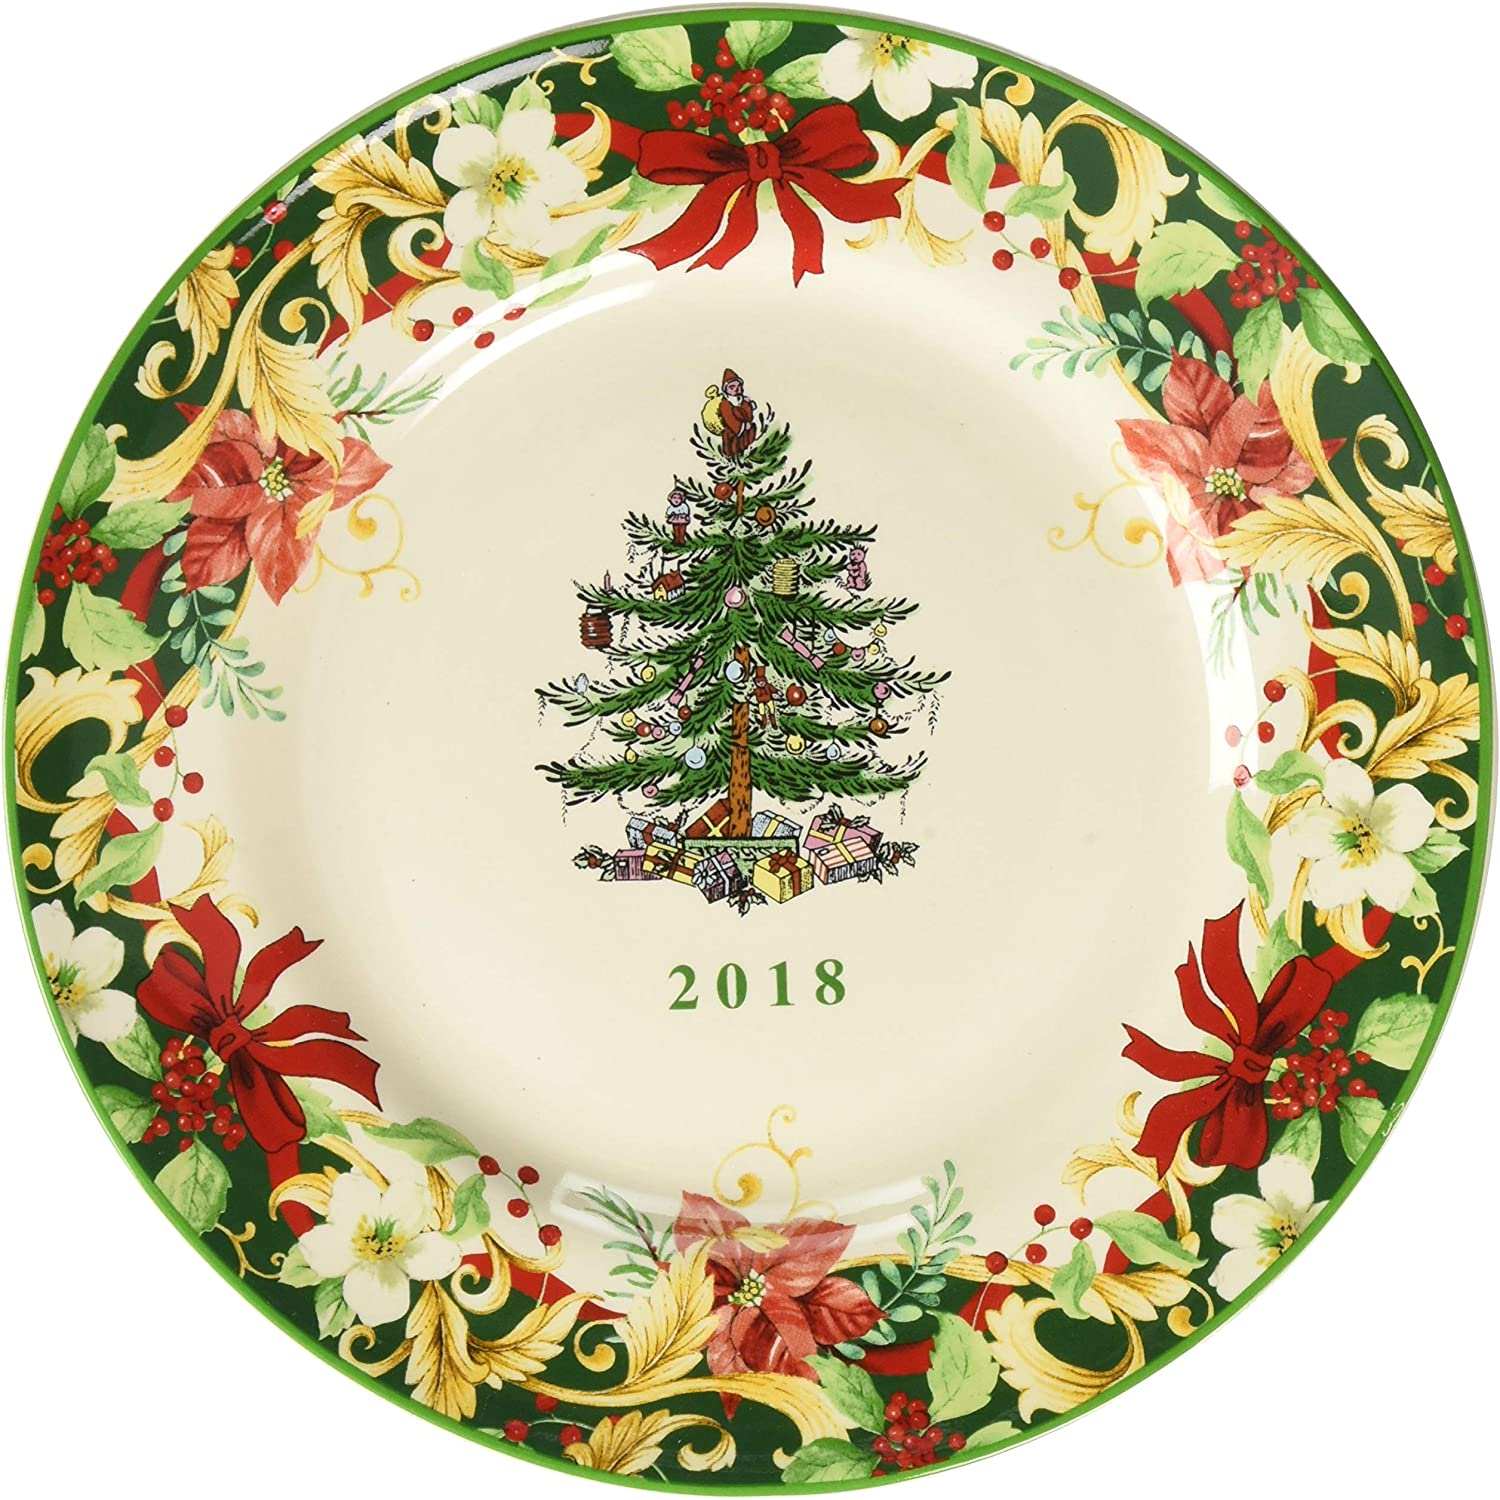 Spode Christmas-Tree 2020 Annual Edition Christmas-Plate; White, Green And Red Amazon.com: Spode 1667228 Annual Collector Plate, Green: Home